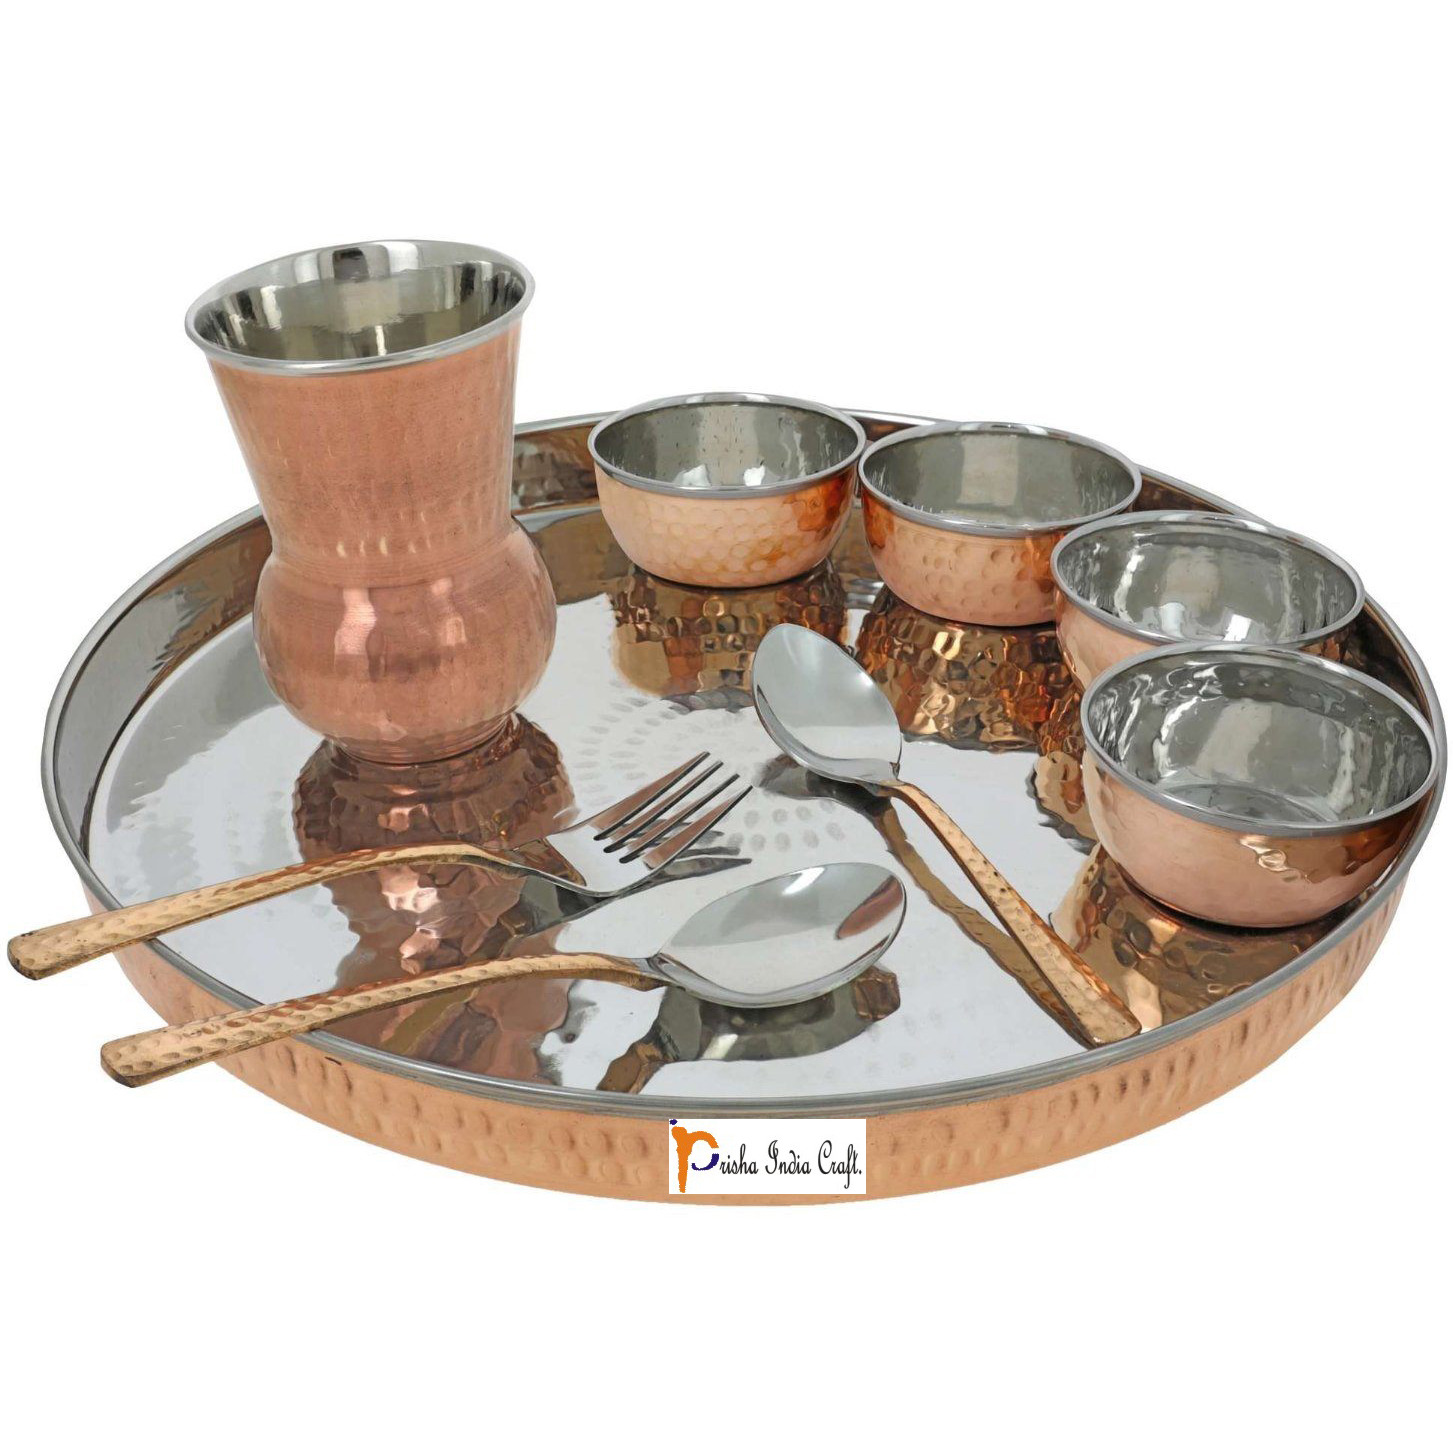 ... Prisha India Craft B. Set of 5 Dinnerware Traditional Stainless Steel Copper Dinner Set of ...  sc 1 st  Zifiti.com & Buy Online Prisha India Craft B. Set of 5 Dinnerware Traditional ...